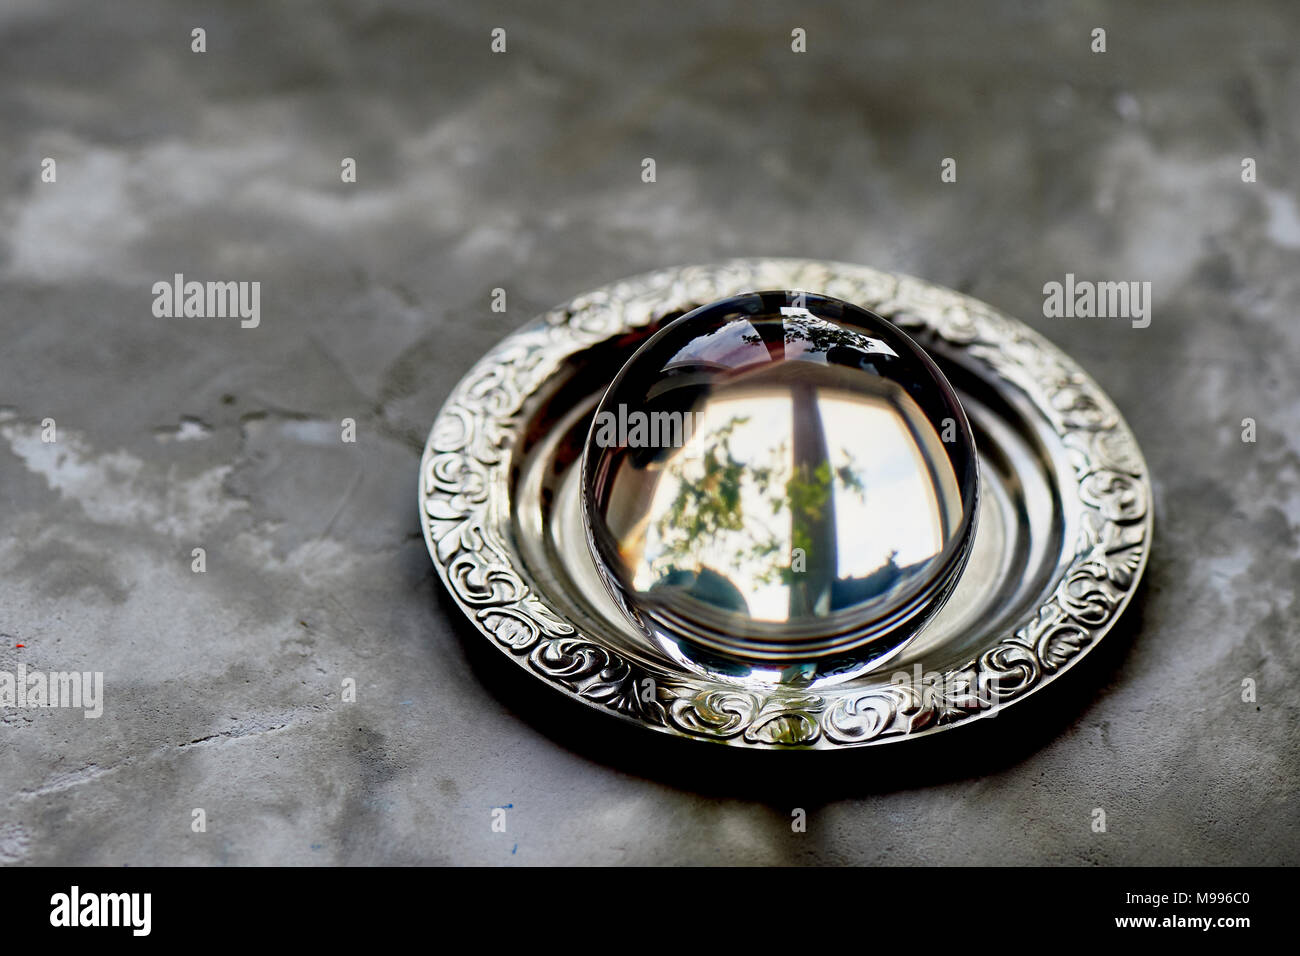 the glass ball lies on an old saucer. Grey concrete background - Stock Image